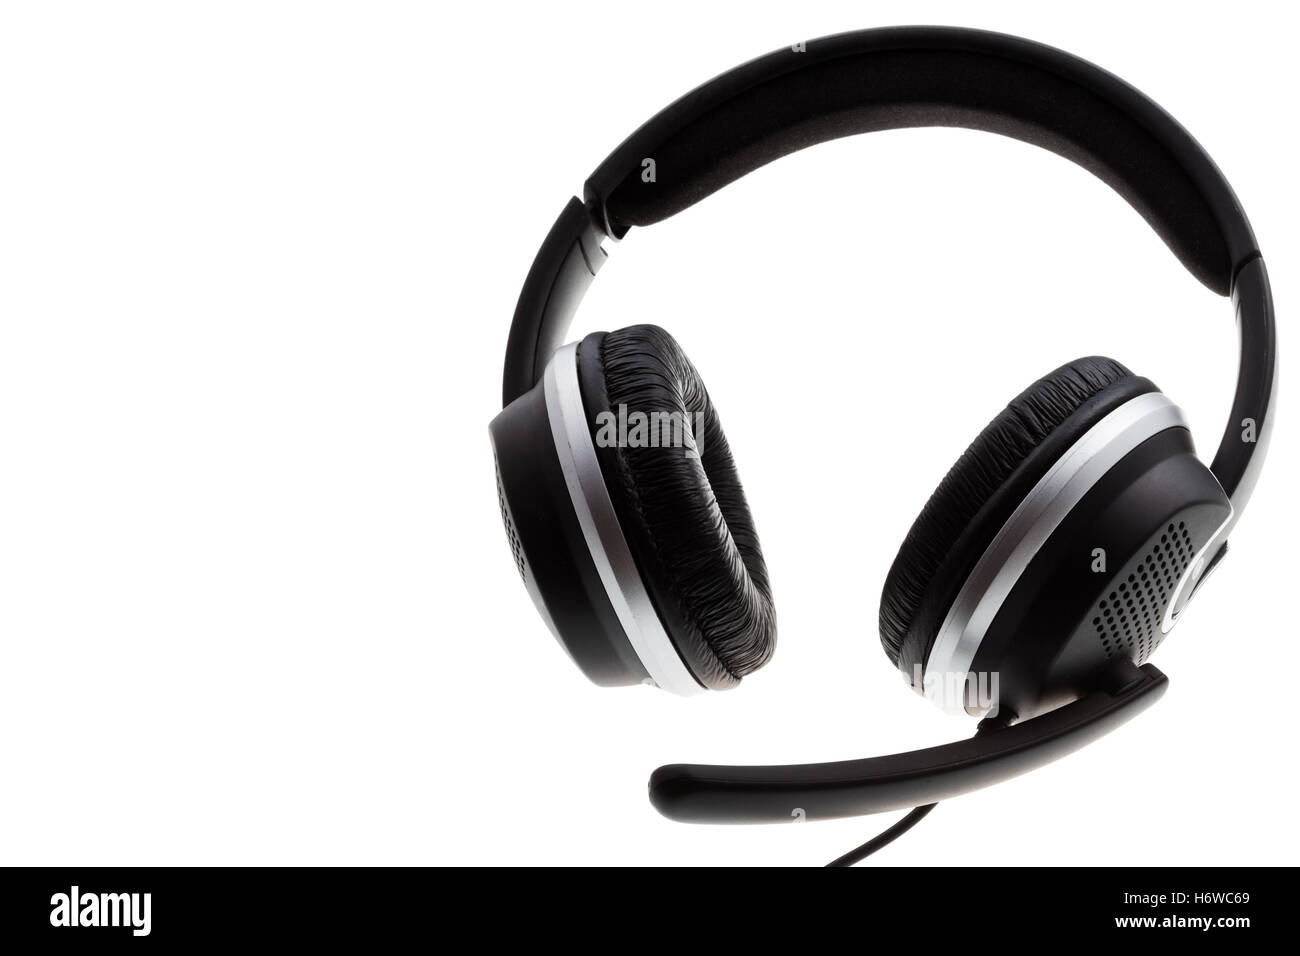 Phone Telephone Headpiece Headset High Resolution Stock Photography And Images Alamy